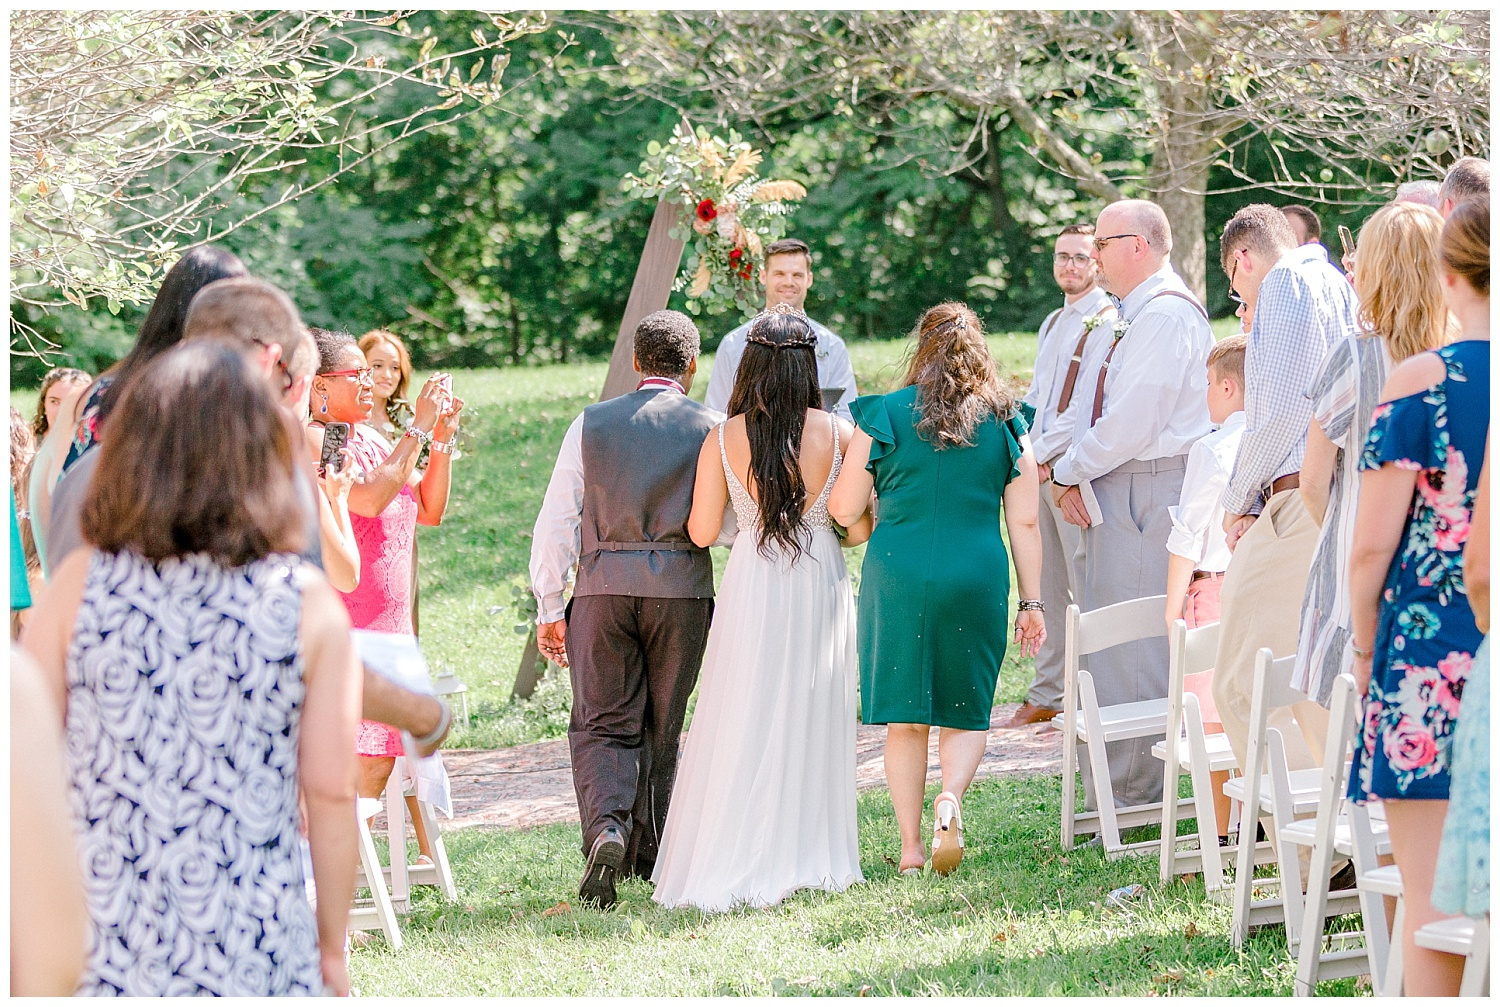 Olive green and white rustic barn wedding at burnside plantation in bethlehem pennsylvania by PA based destination wedding and lifestyle photographer Lytle photography (40).jpg